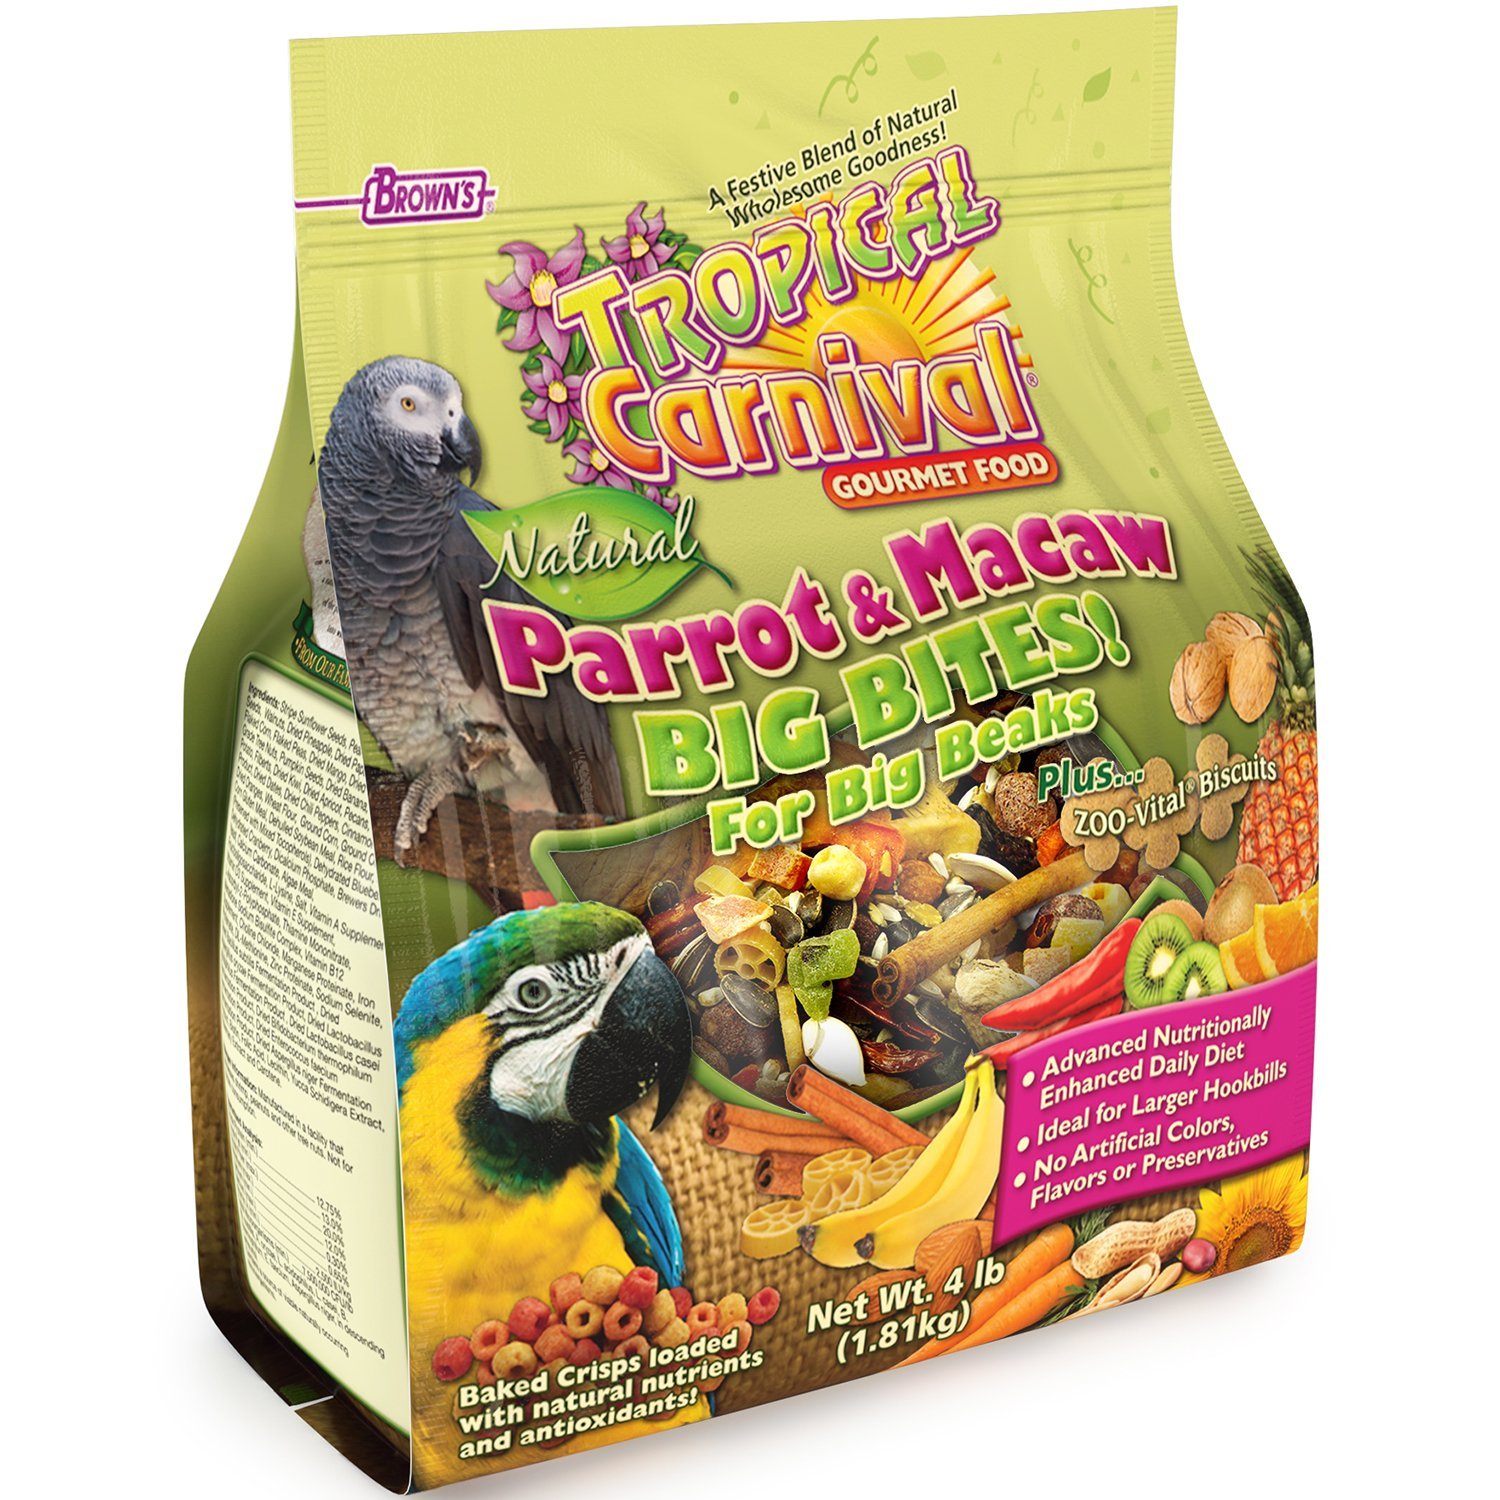 F.M. Brown's Tropical Carnival Natural Parrot, Cockatoo, and Macaw Food for Big Beaks with Fruits, Veggies, Nuts, and Grains, 4-lb Bag - Vitamin-Nutrient Fortified Daily Diet by Tropical Carnival